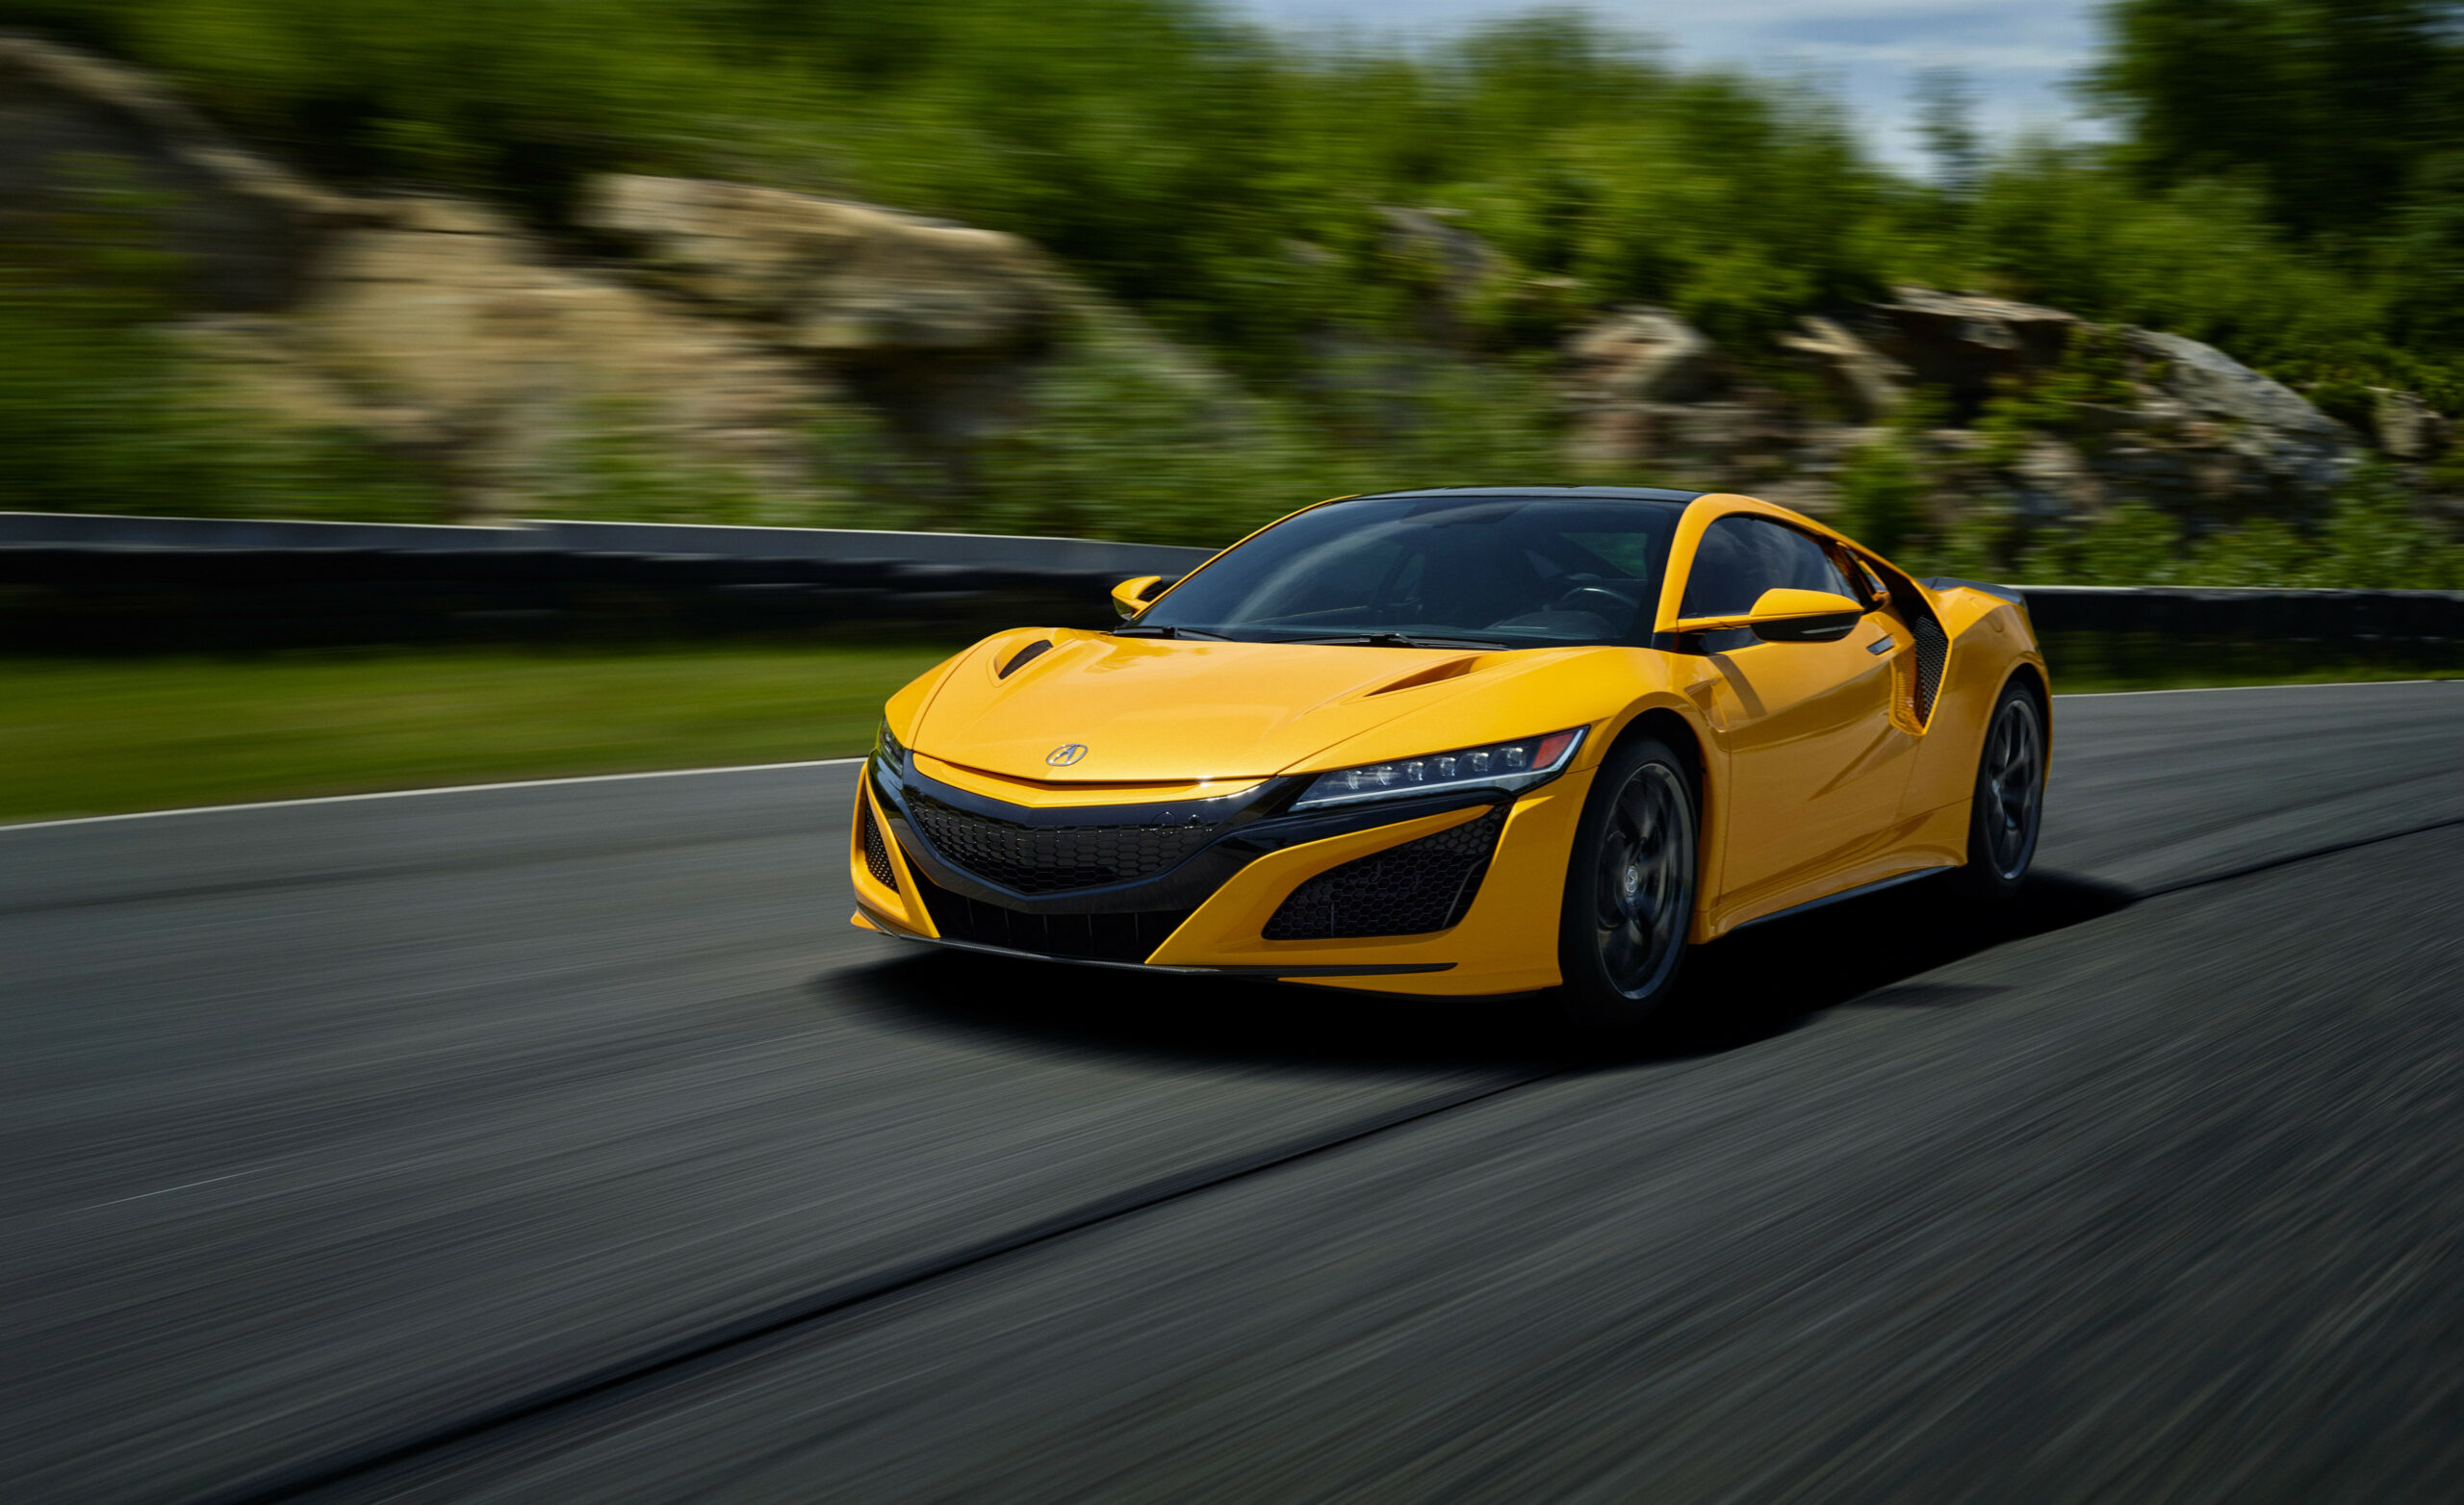 10 Acura NSX Review, Pricing, and Specs - 2020 acura nsx horsepower